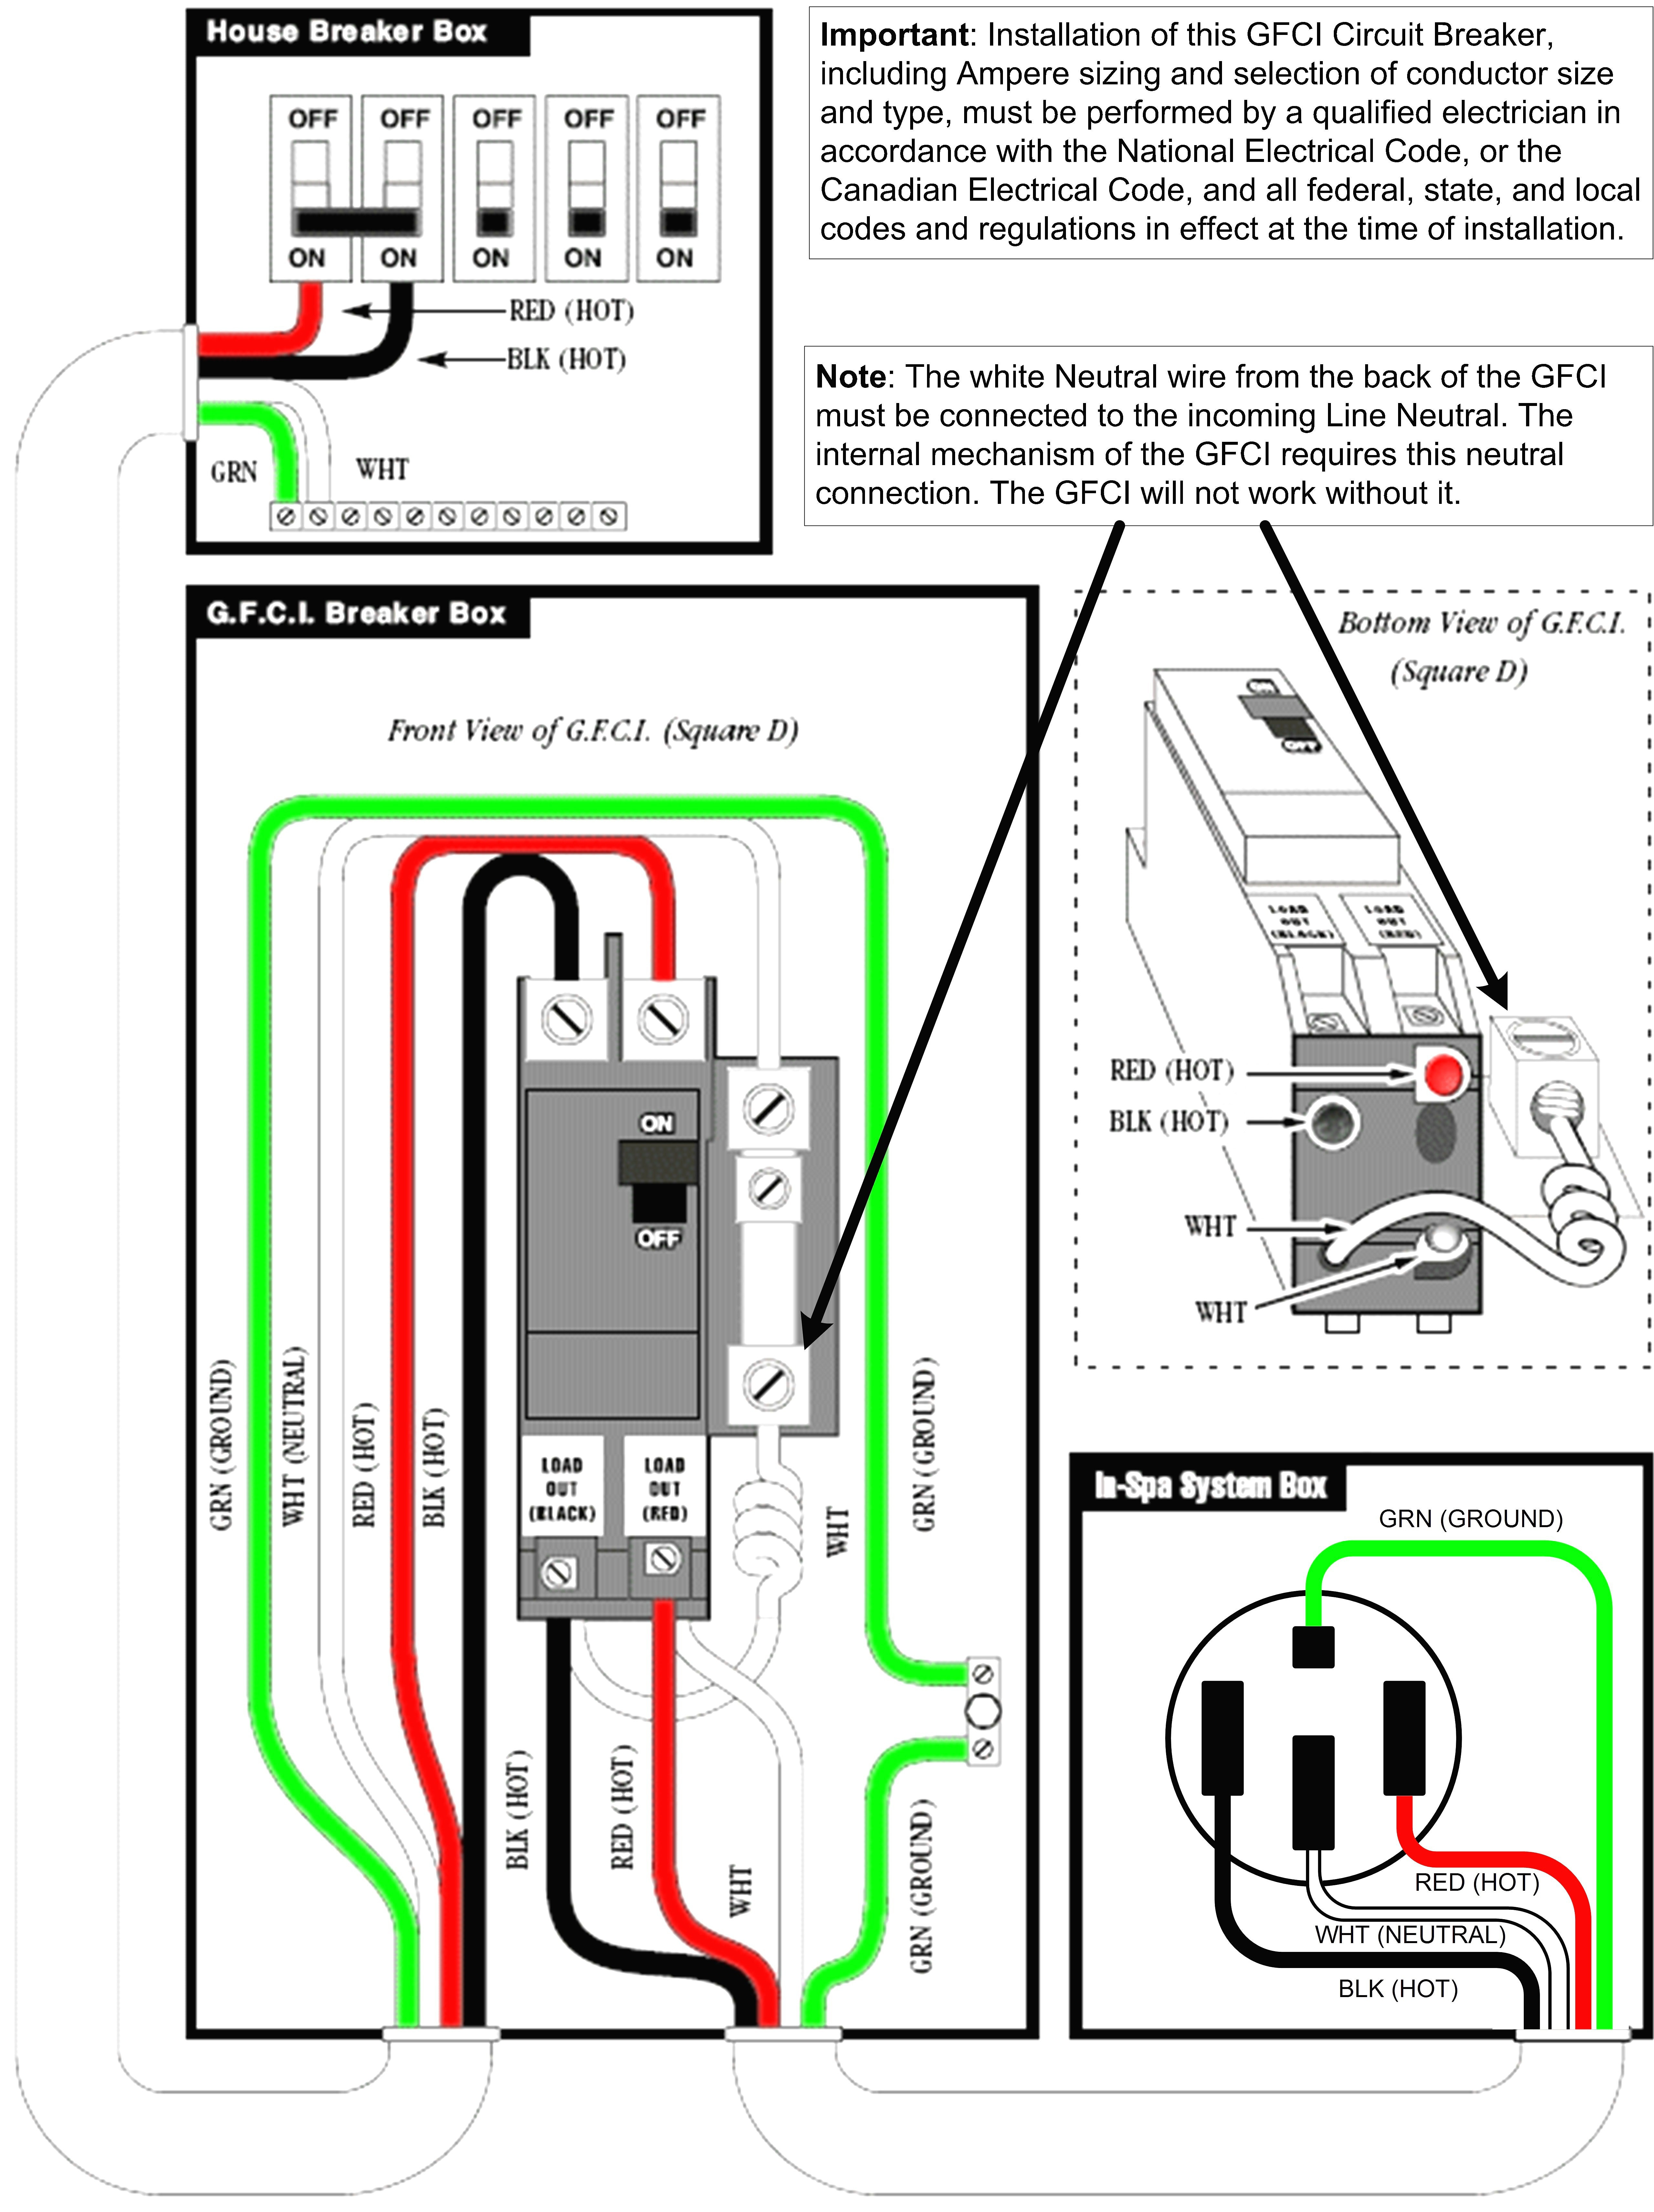 220V 4 Wire Diagram - Wiring Diagram Data - 4 Wire 220 Volt Wiring Diagram